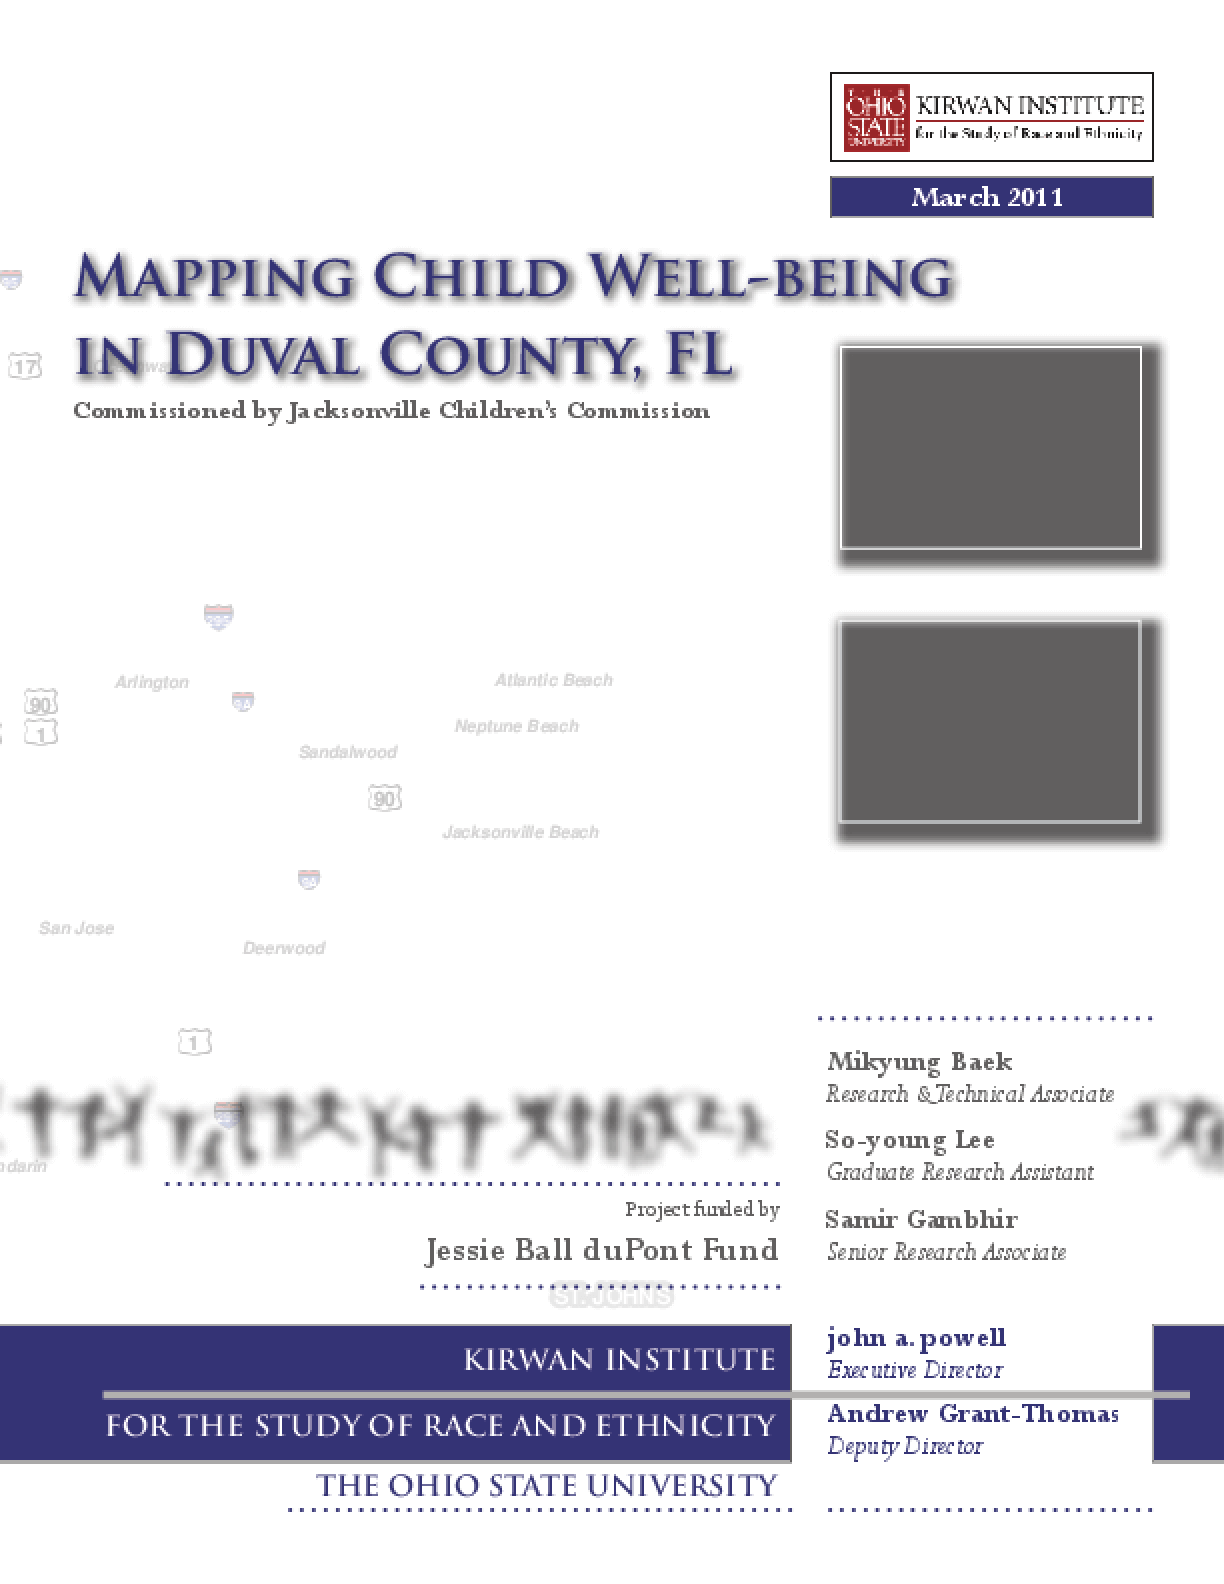 Mapping Child Well-Being in Duval County, FL